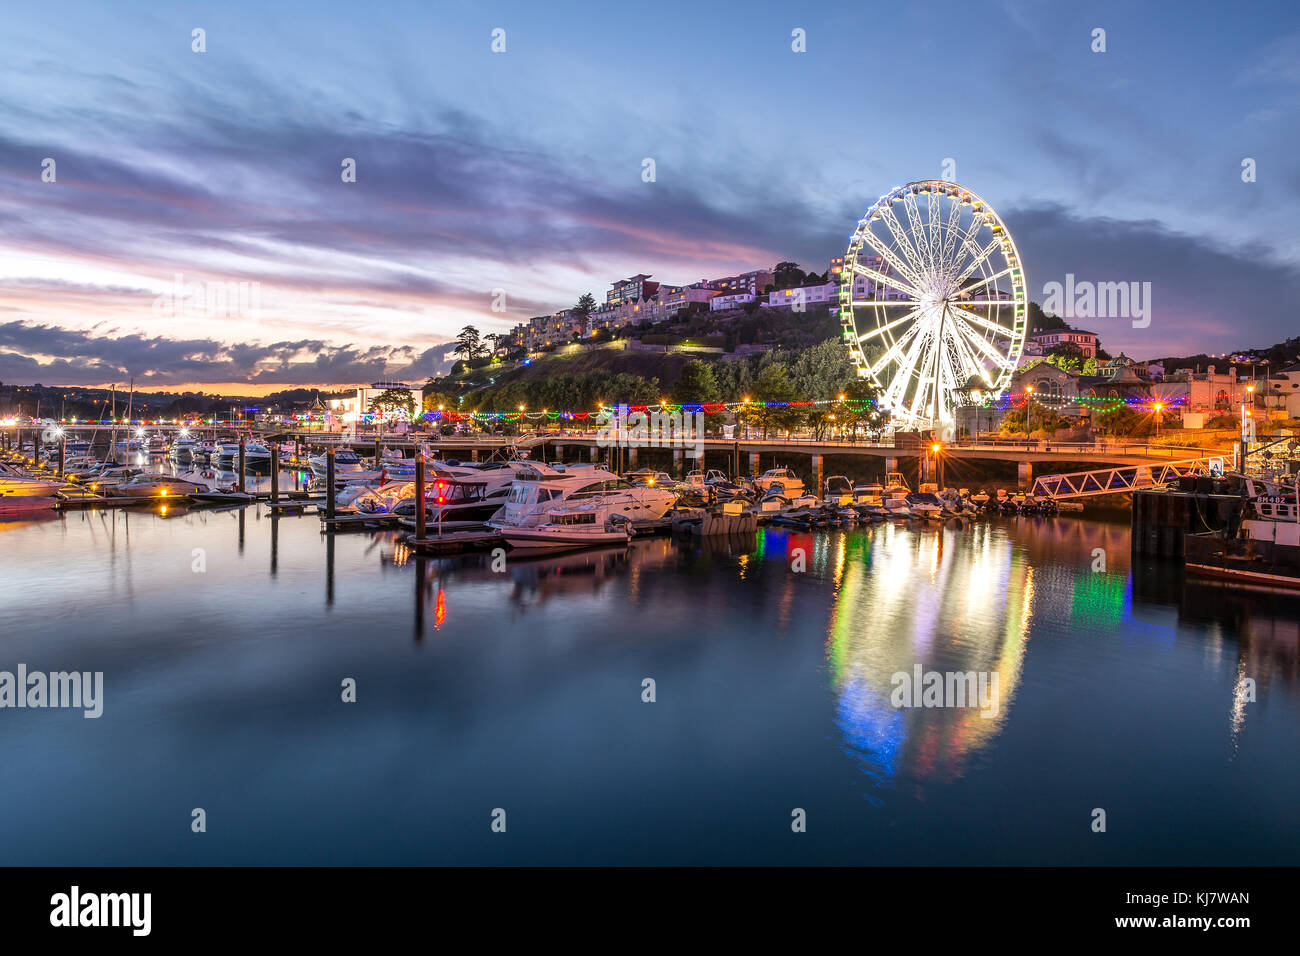 Le port de Torquay, au crépuscule Photo Stock